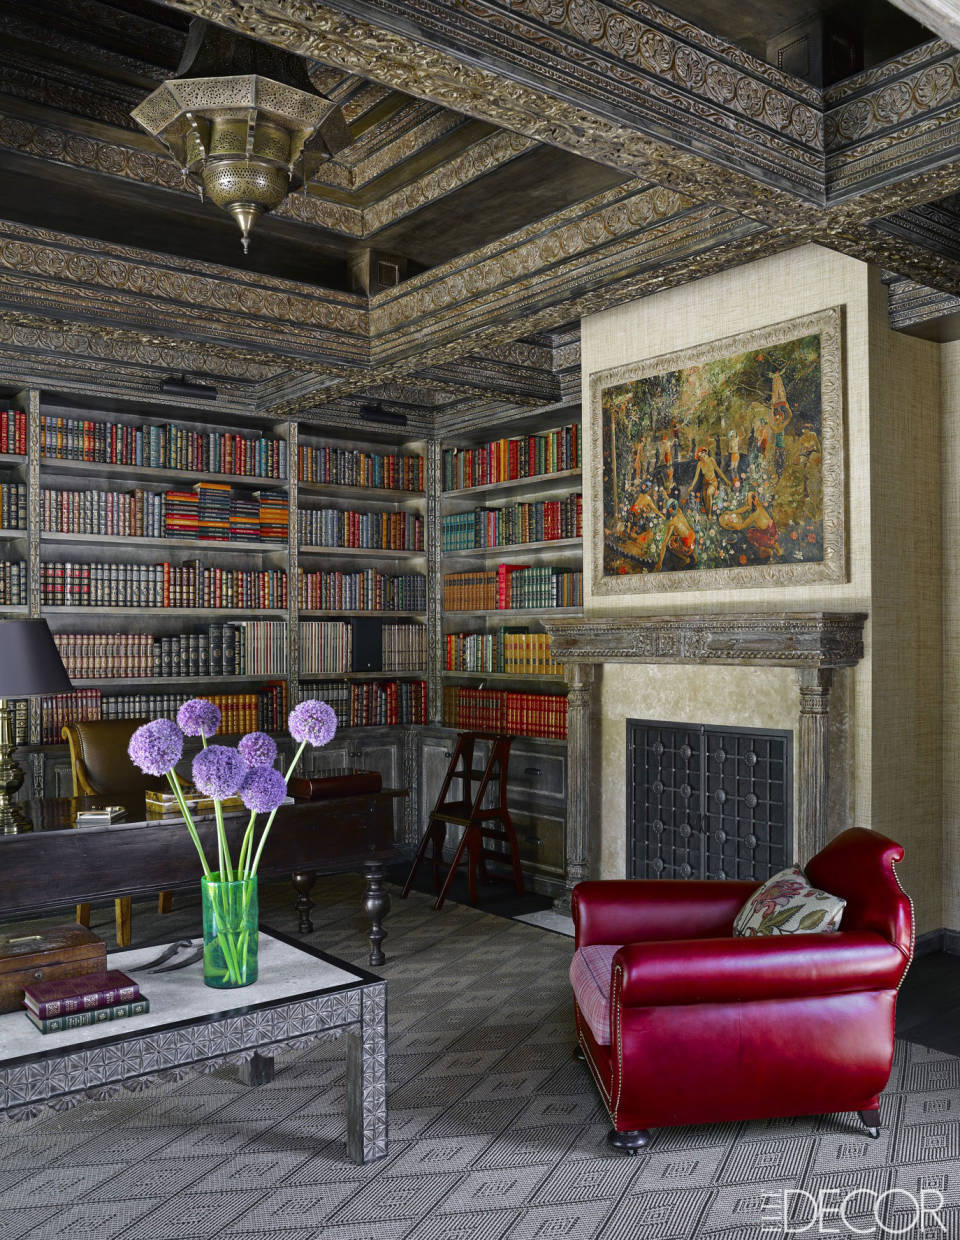 Gorgeous interior design in luxury library by Martin Lawrence Bullard